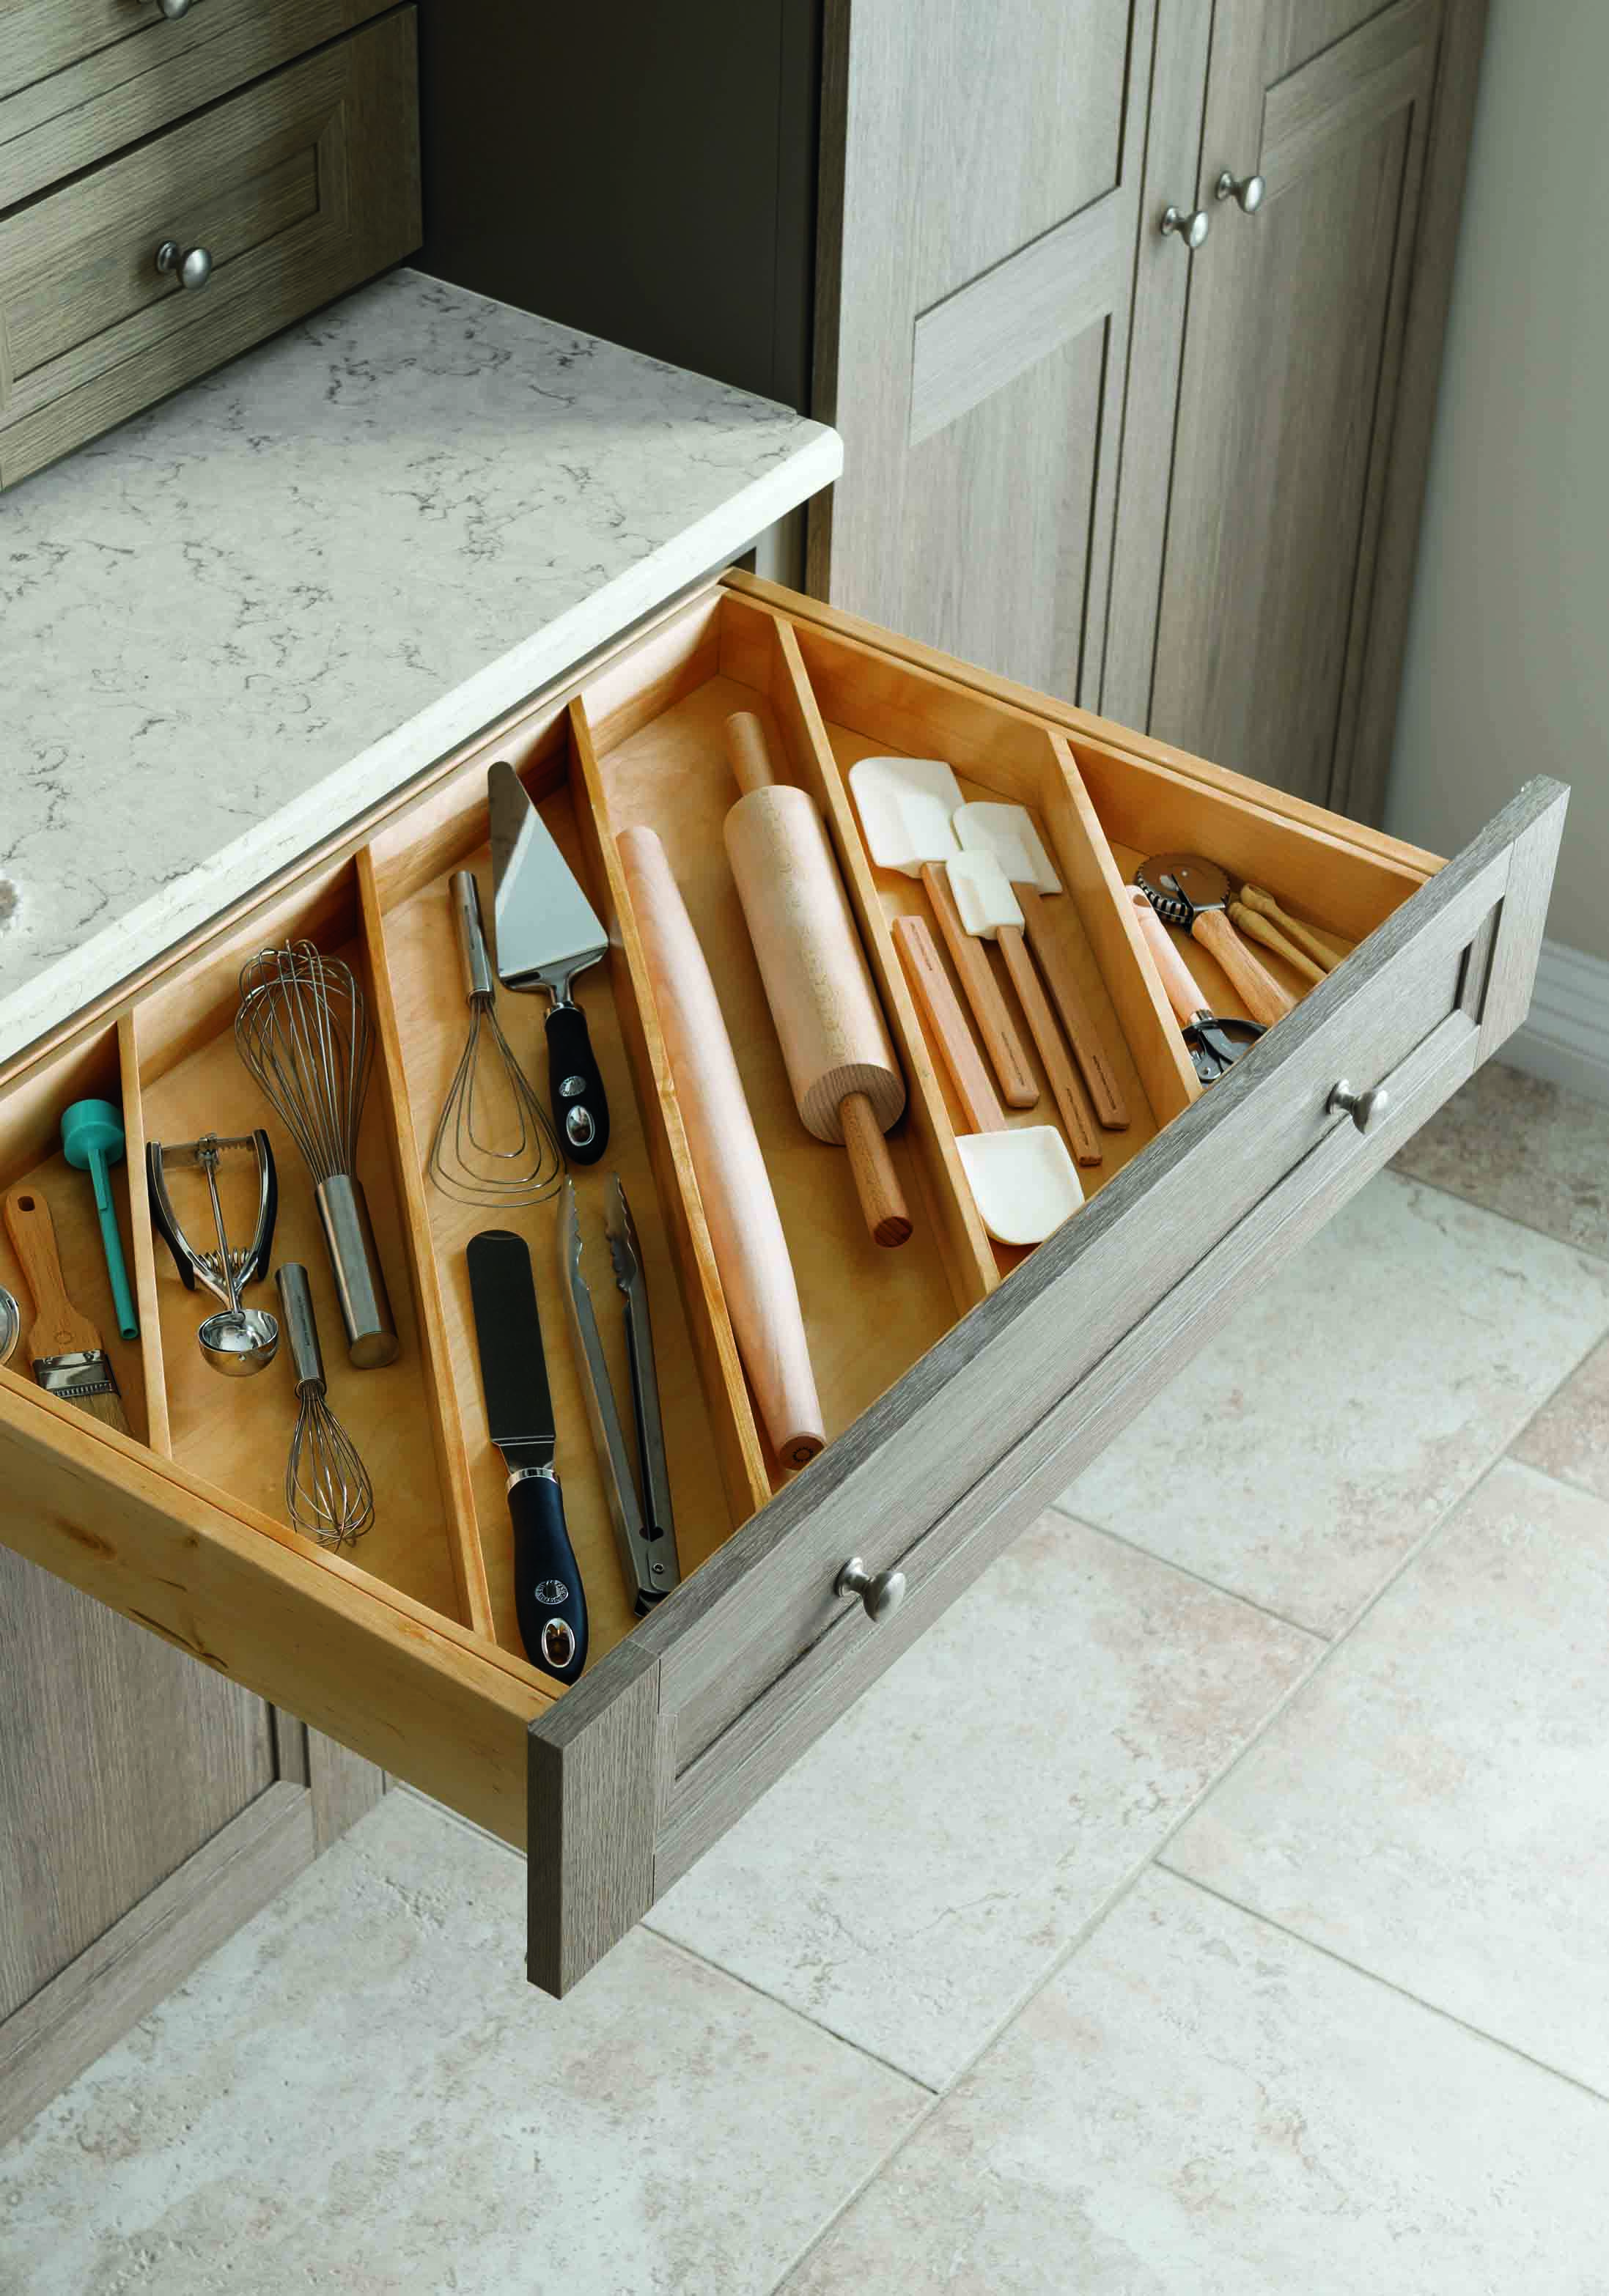 kitchen storage tip store your utensils diagonally instead of kitchen storage tip store your utensils diagonally instead of flat in vertical or horizontal slots